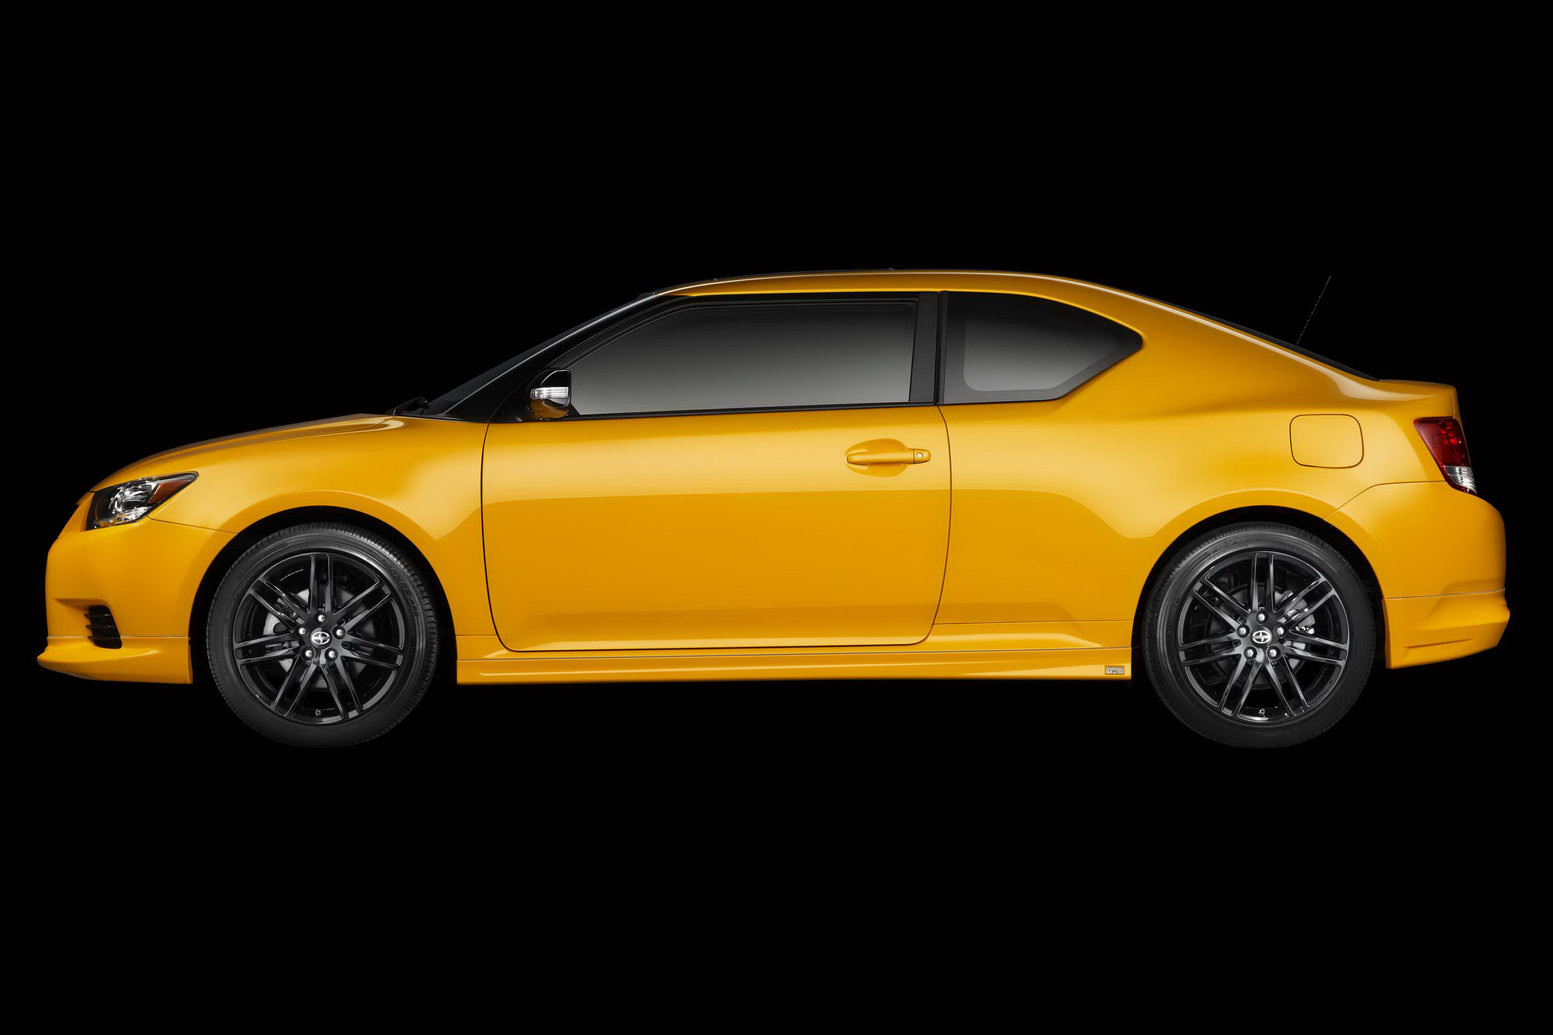 2012 Scion tC Version 3 Scion Car with Sophisticated Upgradation Tools